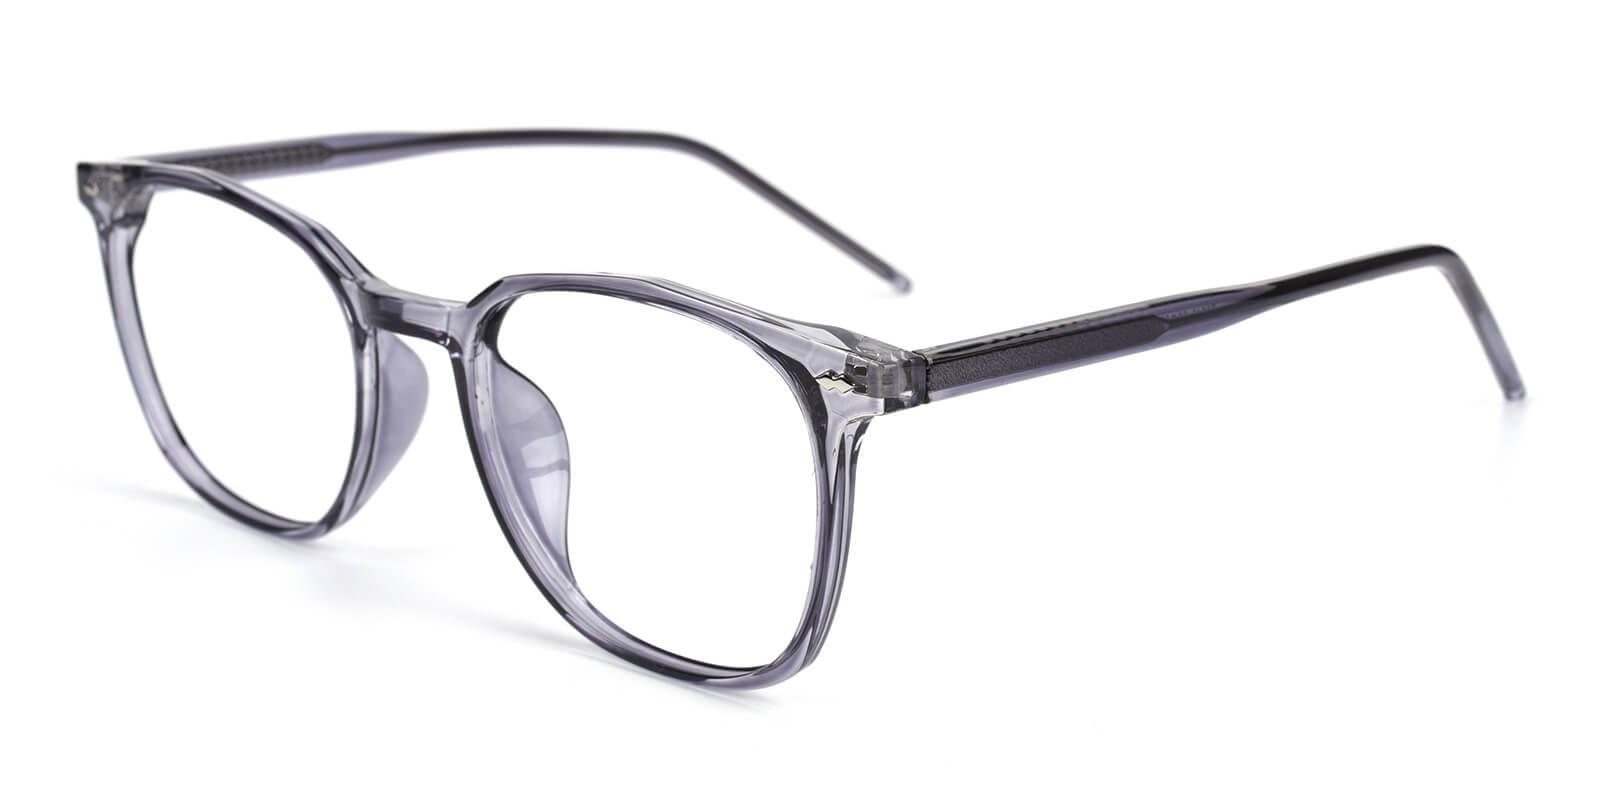 Linking-Gray-Round-Acetate-Eyeglasses-additional1